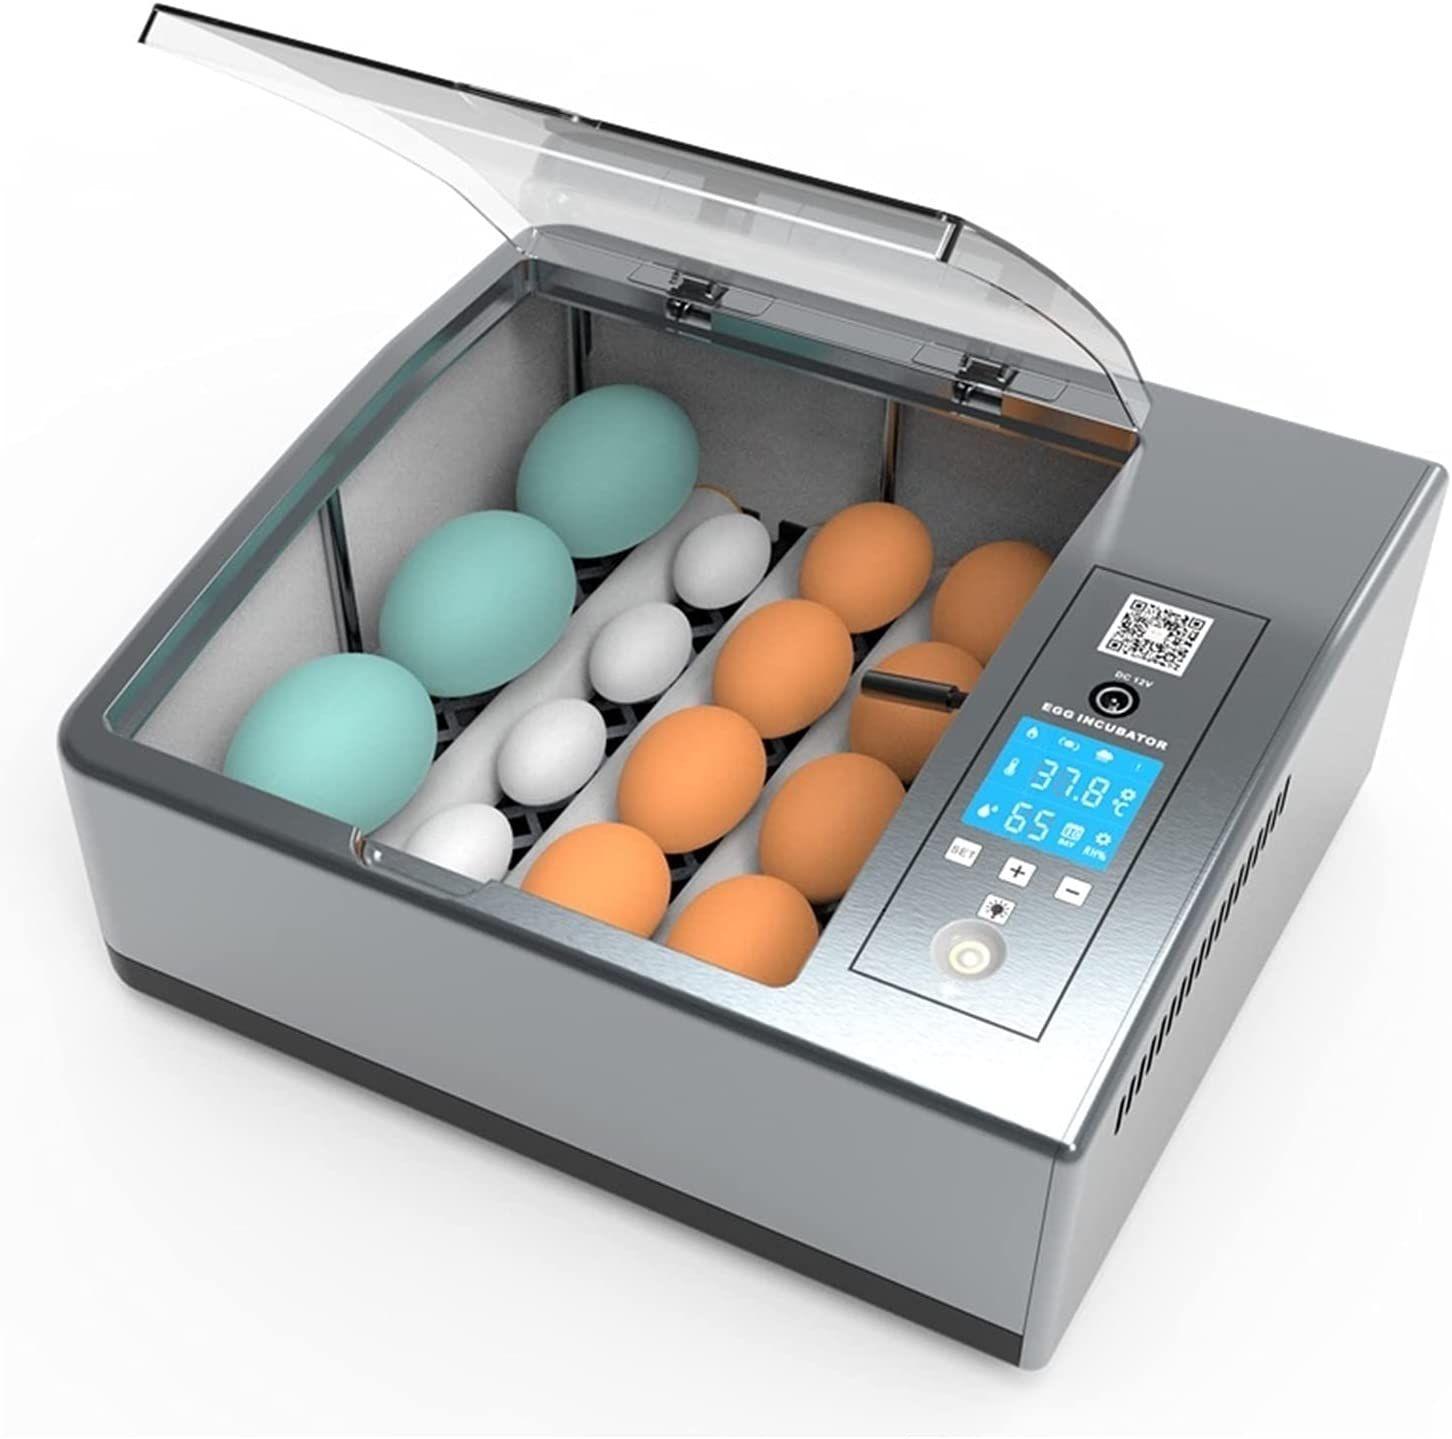 Max 76% OFF HUACHEN-LS Automatic Egg Incubator Smal 30 Outlet sale feature Chicken